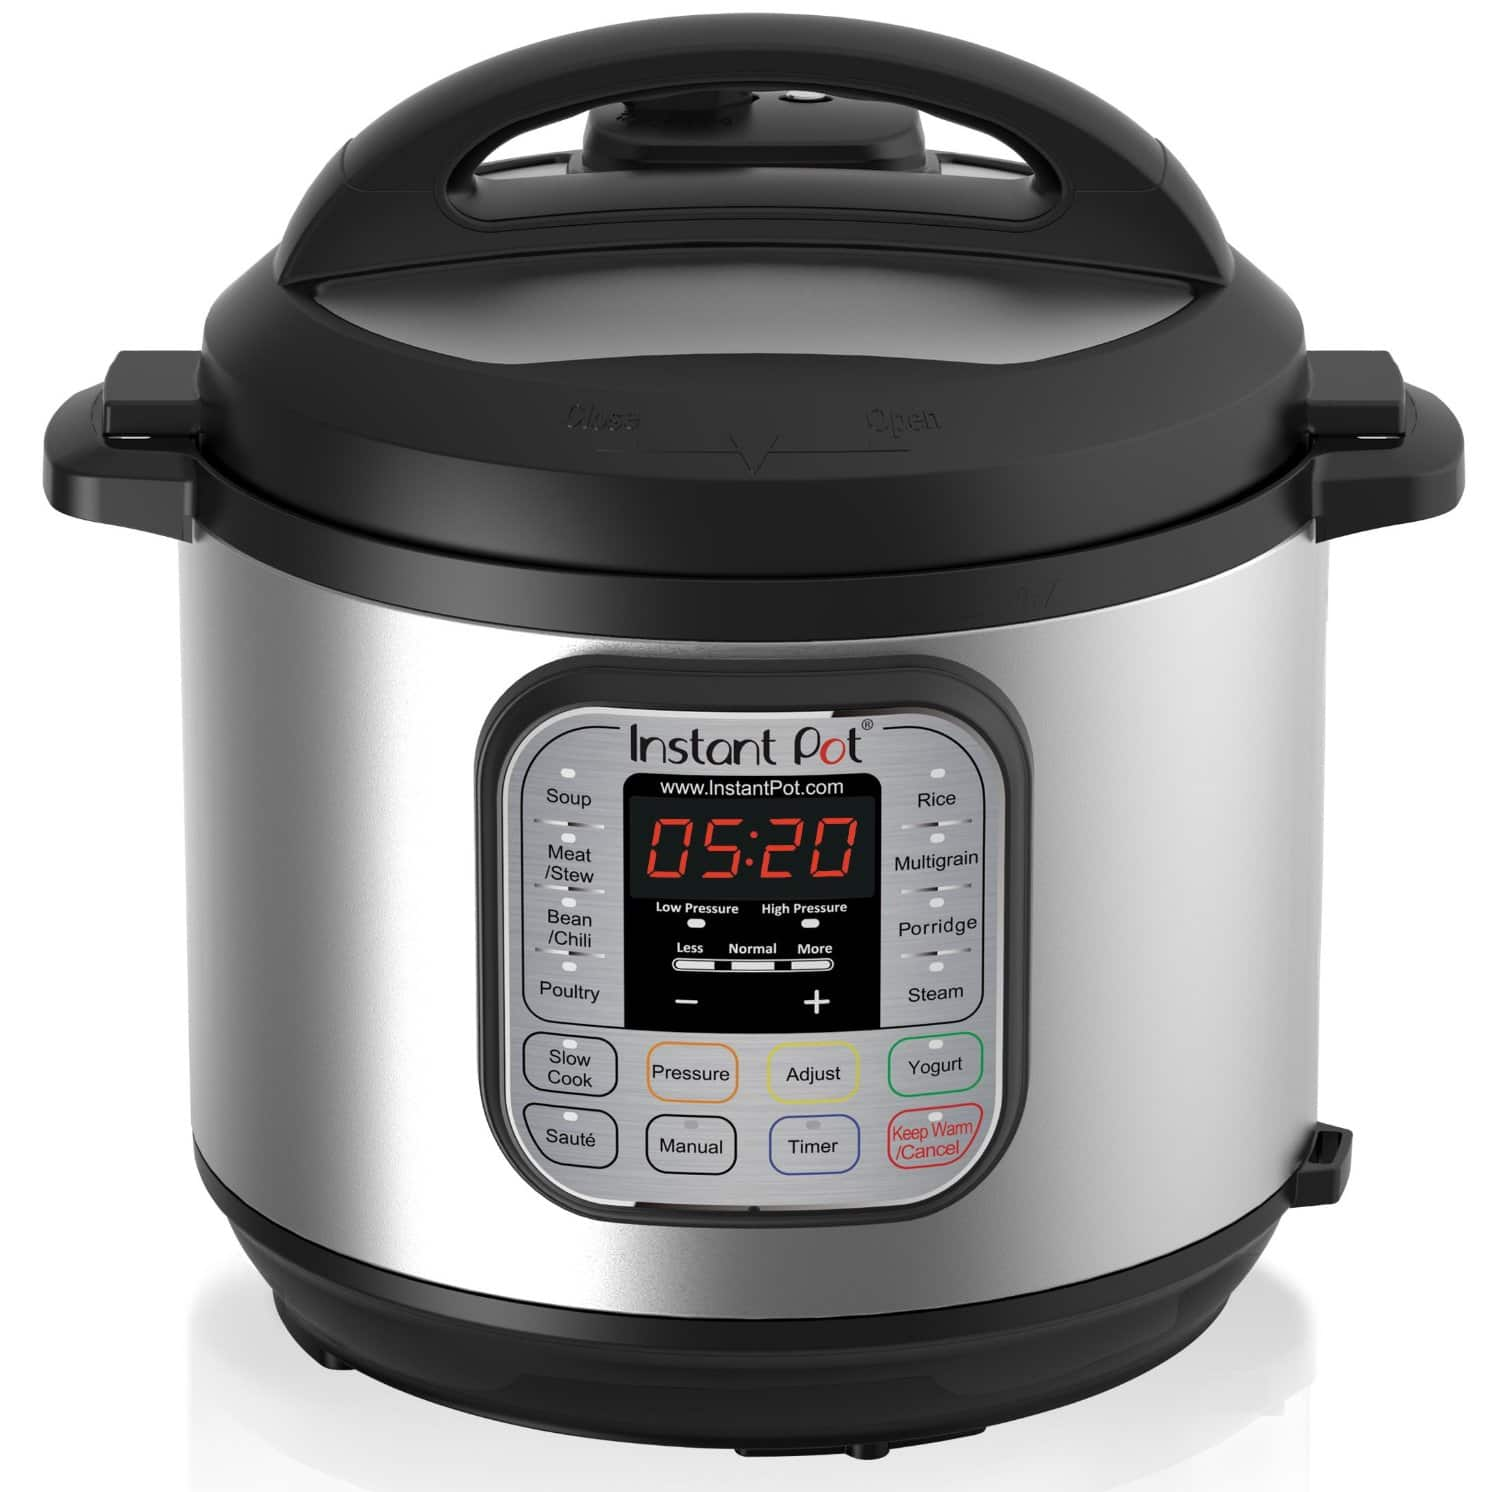 6-Quart Instant Pot 7-in-1 Programmable Pressure Cooker $100 w/ MasterPass Checkout w/ Free Shipping *950+ Amazon Reviews*